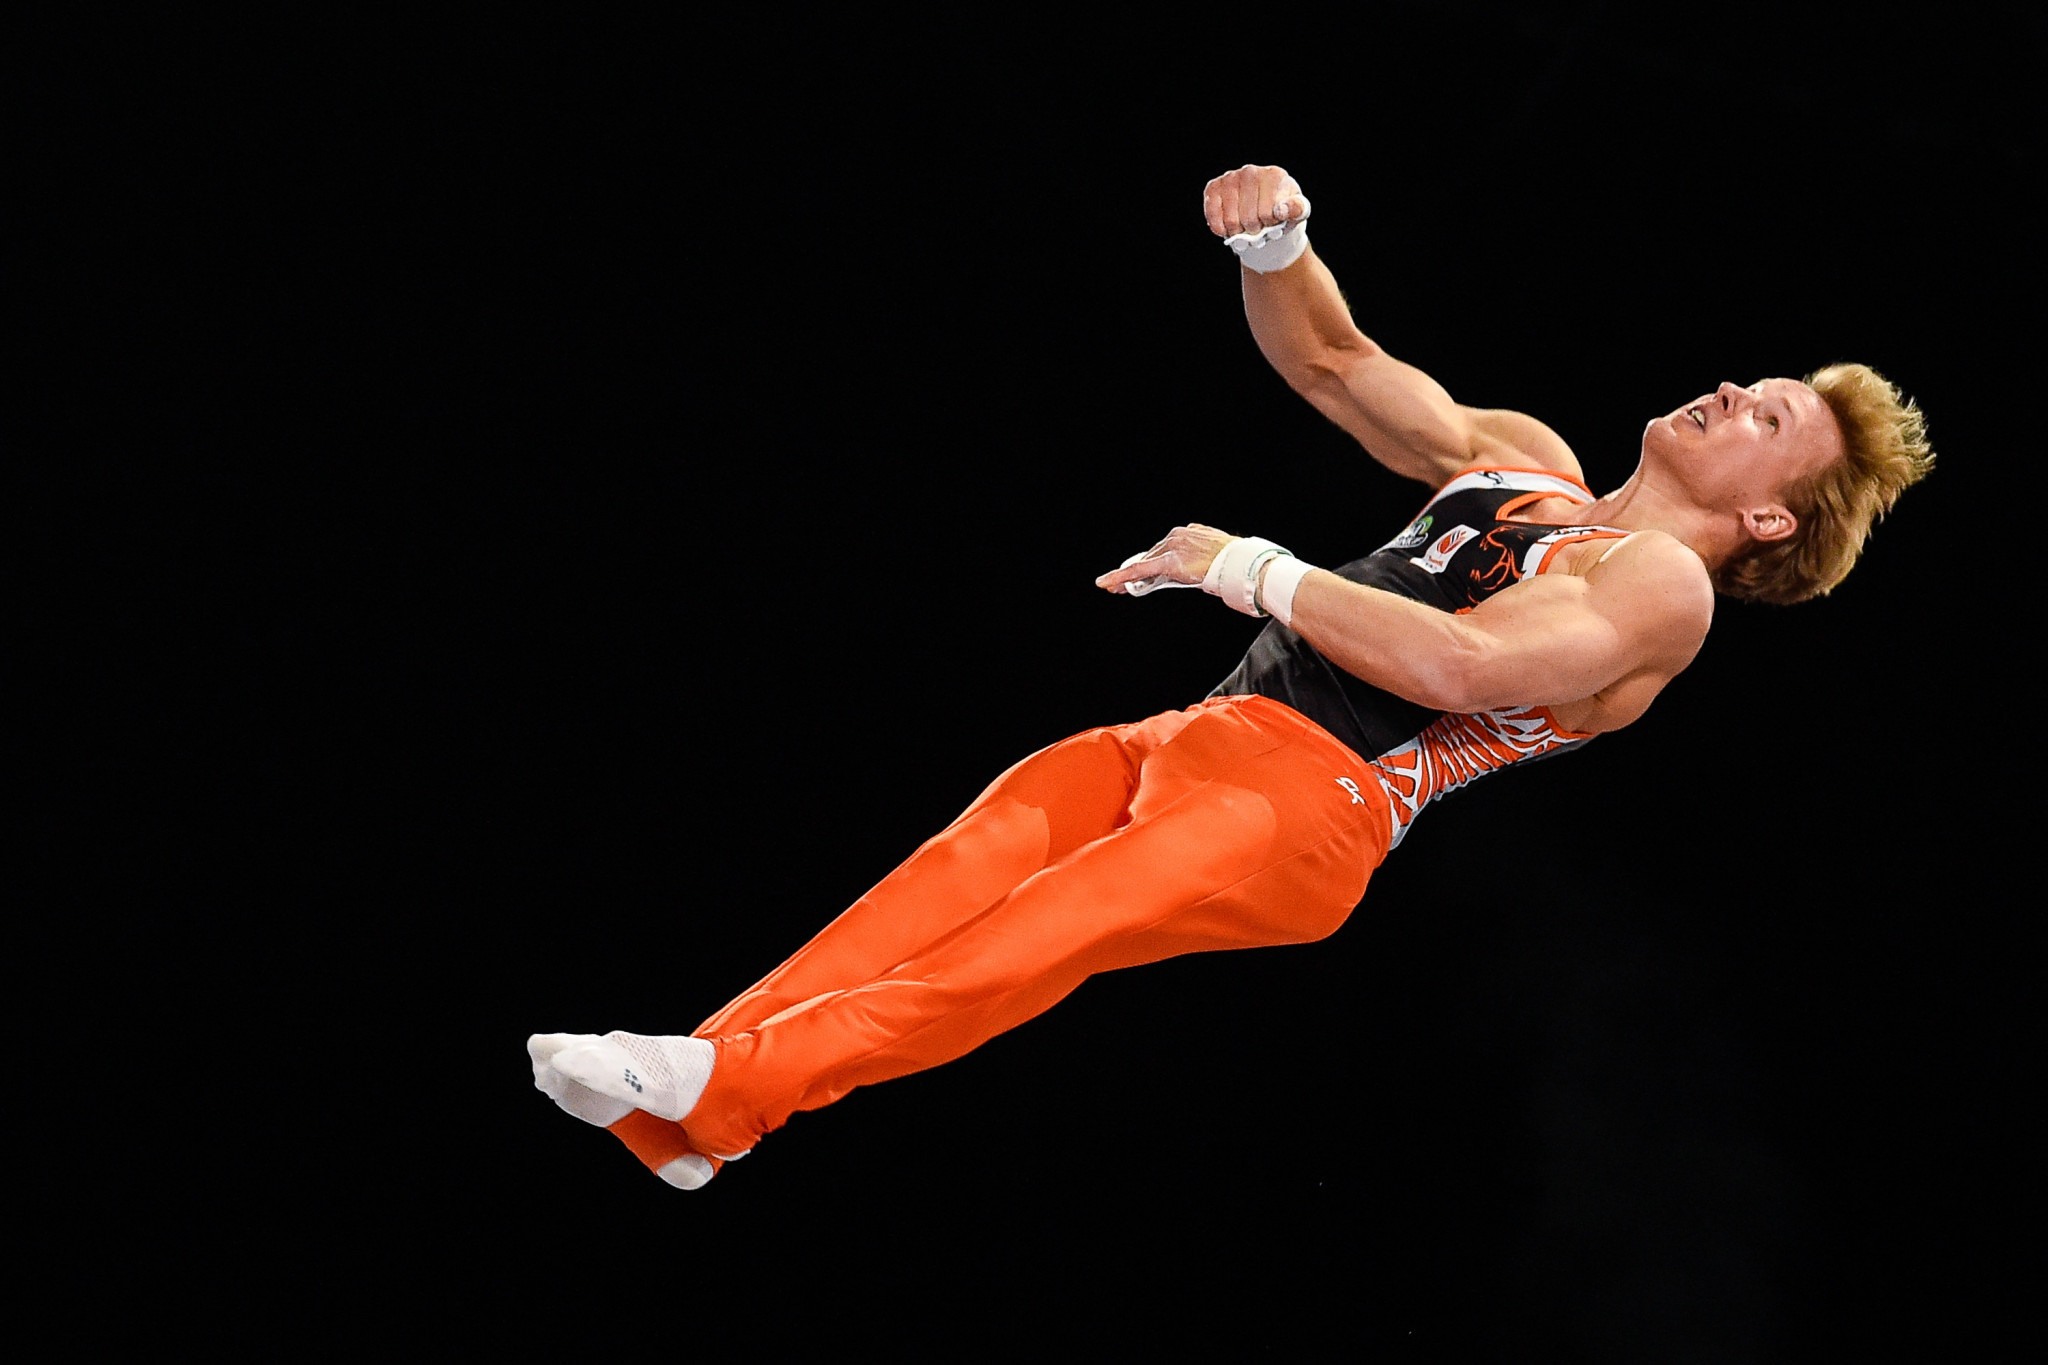 Zonderland and Srbić to renew rivalry at FIG World Challenge Cup in Slovenia